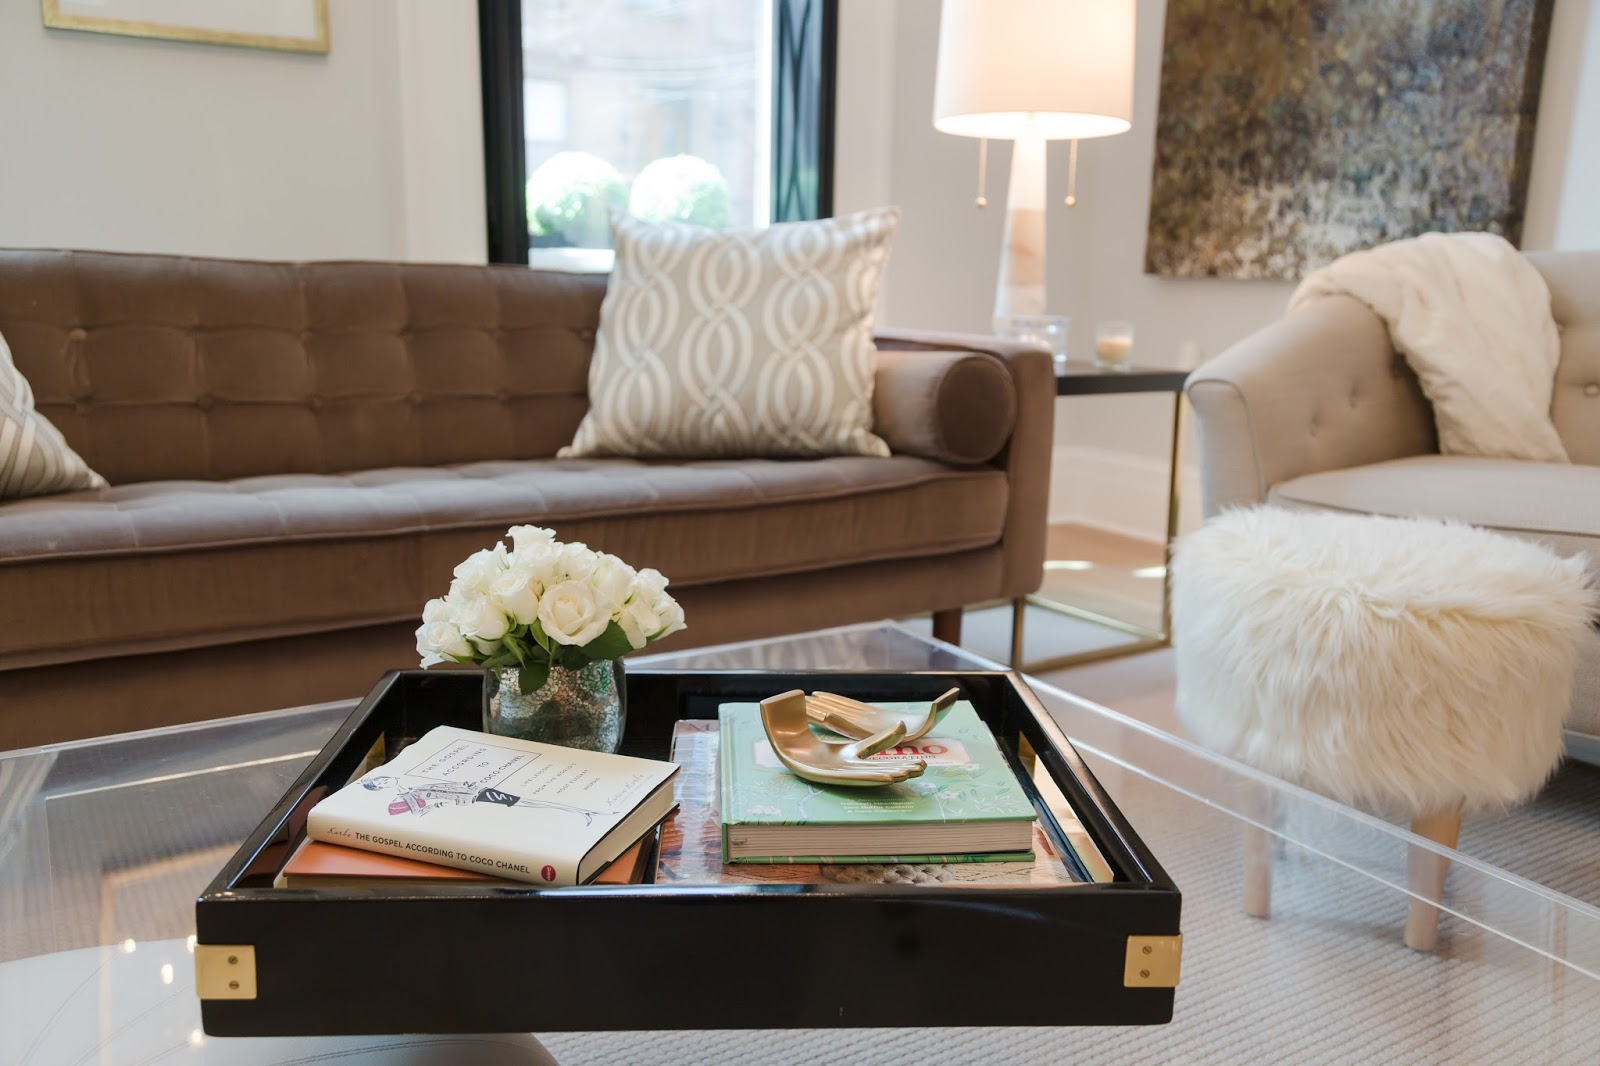 hudson place realty hoboken home staging featured update